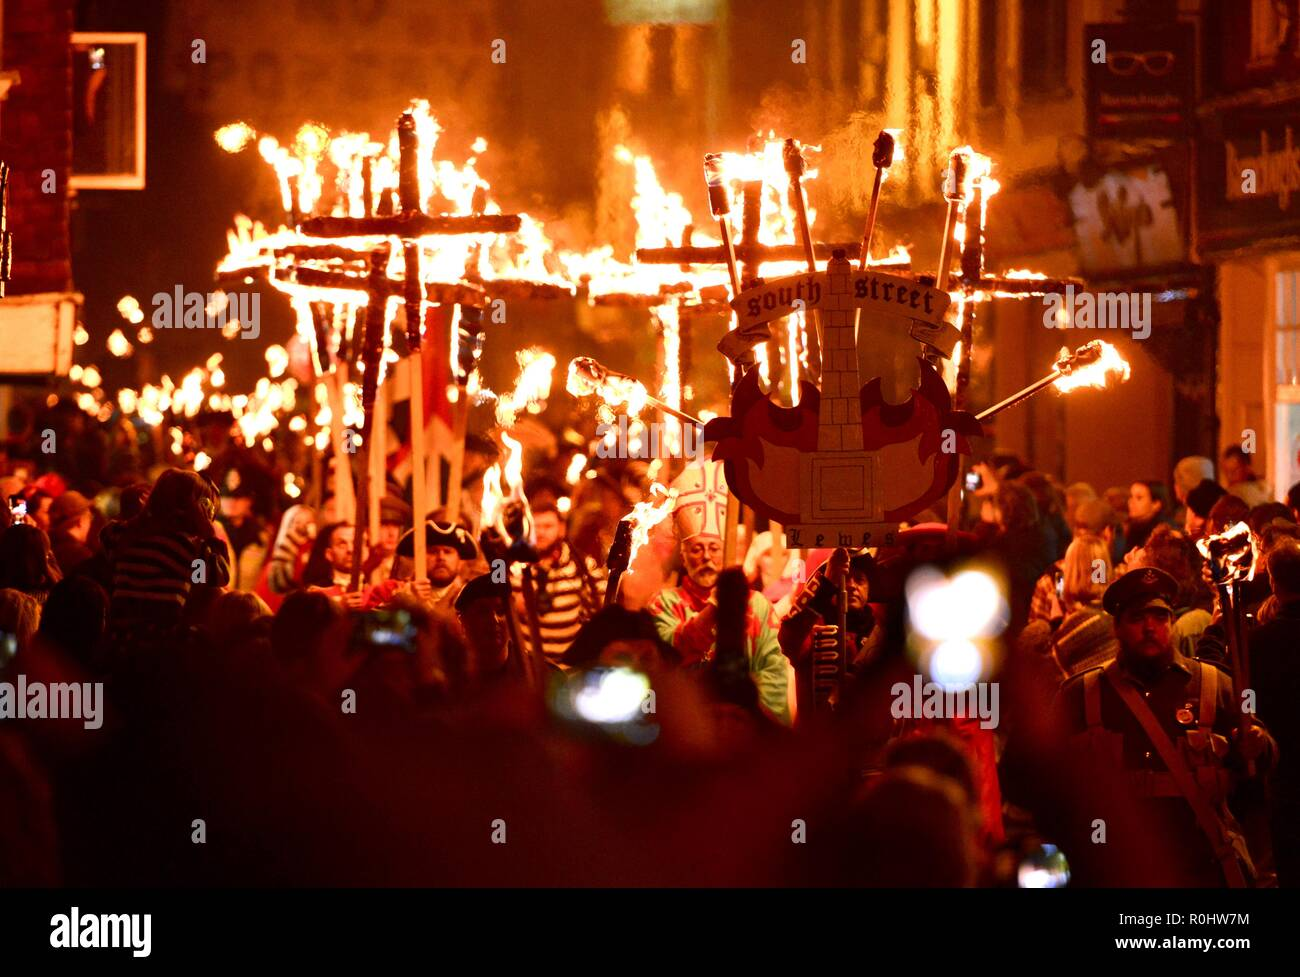 Lewes, East Sussex, UK. 5th November 2018. Bonfire celebrations in Lewes, East Sussex. The town is famous for its annual event different bonfire societies gather in their thousands, to celebrate the foiling of the 1605 gunpowder plot, before blowing up various satirical tableaux. ©️Peter Cripps/Alamy Live News - Stock Image